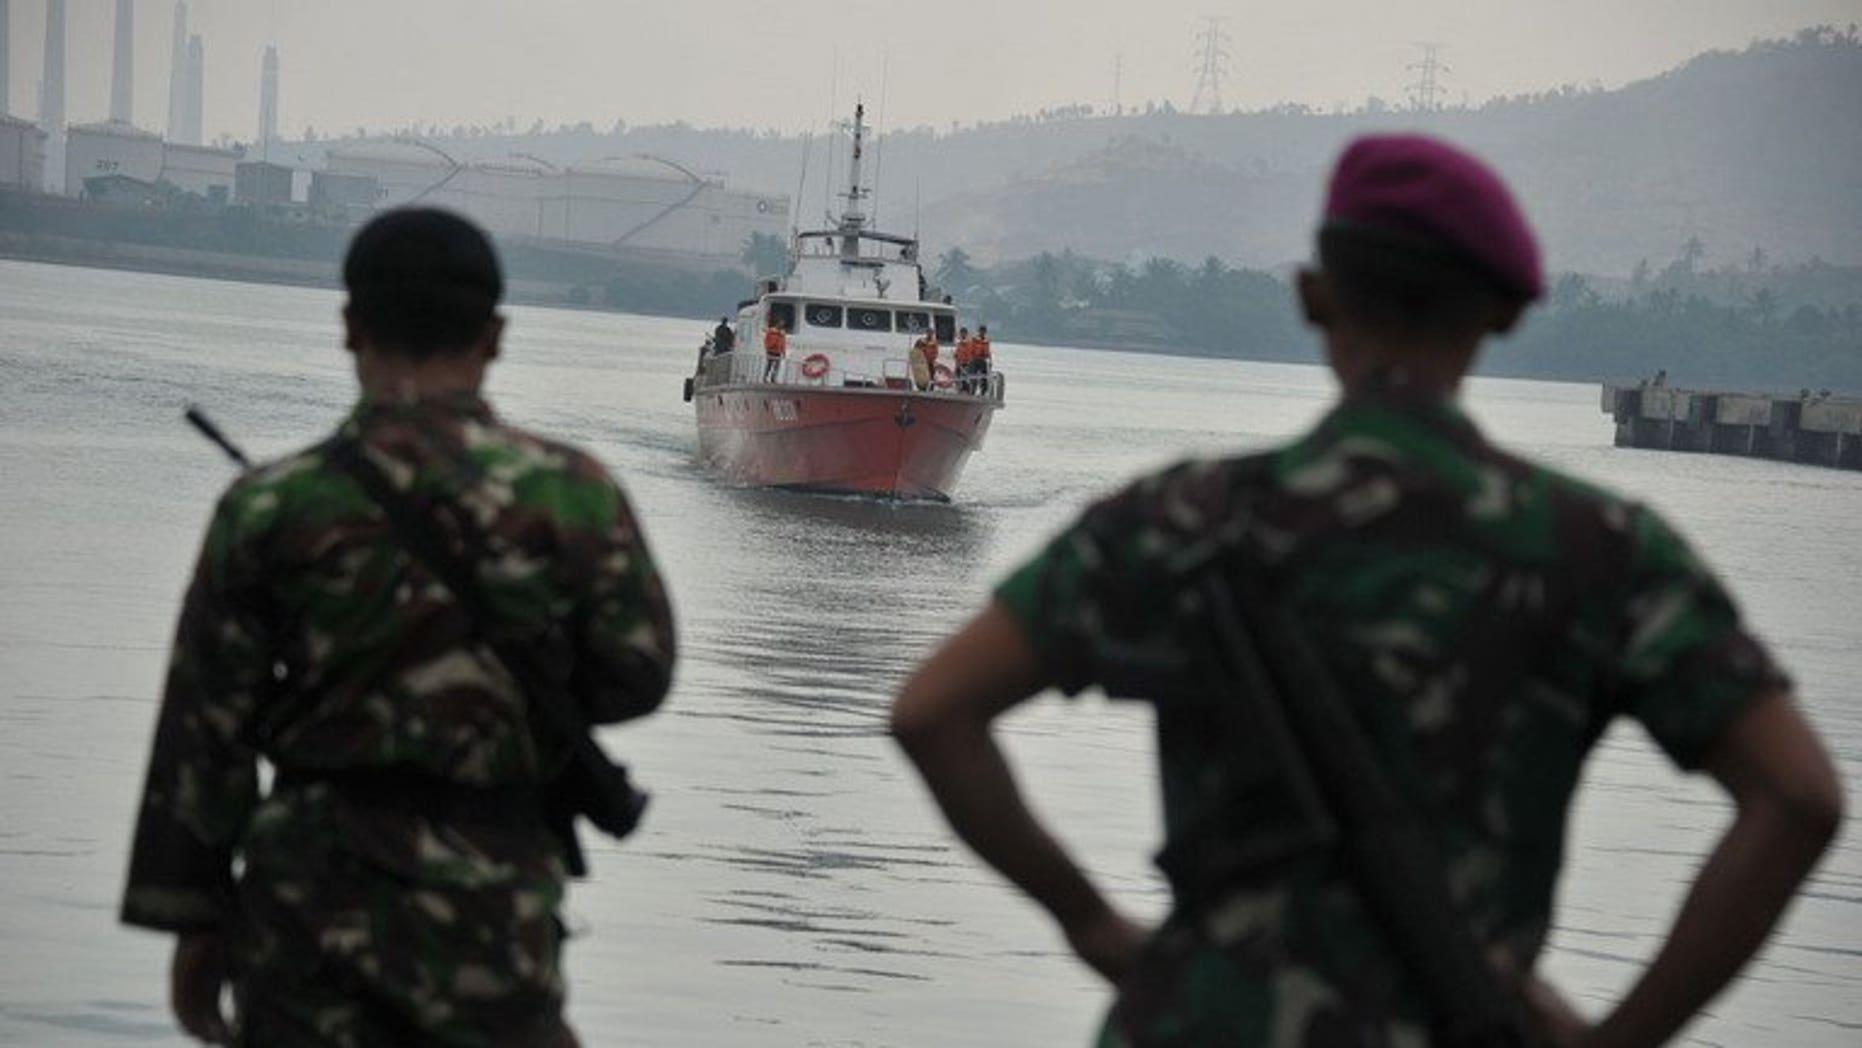 Indonesian marines look towards a rescue boat carrying asylum-seekers at Merak seaport on August 31, 2012. A people-smuggling boat carrying about 80 asylum-seekers broke down in seas south of Indonesia on Friday, prompting several vessels to divert in a bid to help it, Australian and Indonesian officials said.